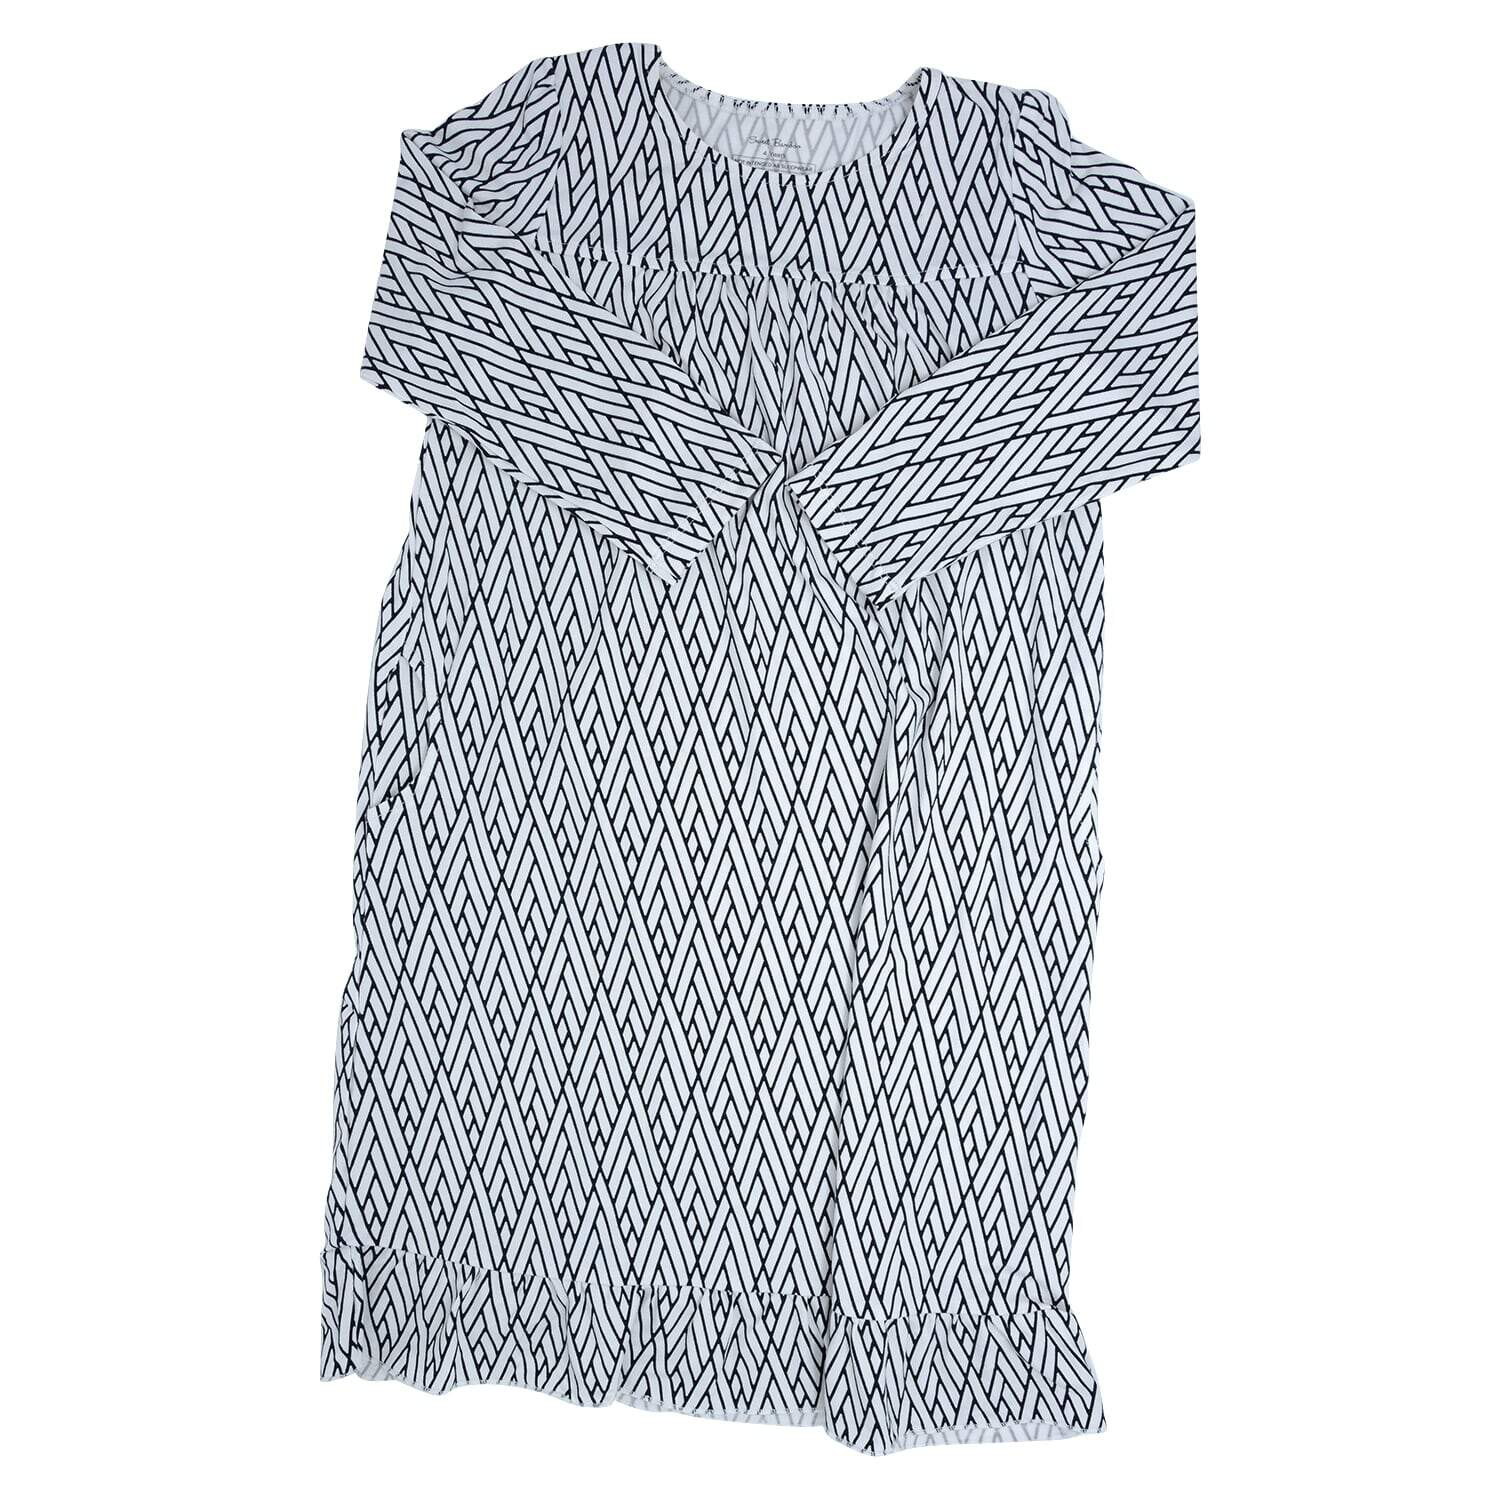 Boho Dress - Modern Weave White with Black - Sweet Bamboo